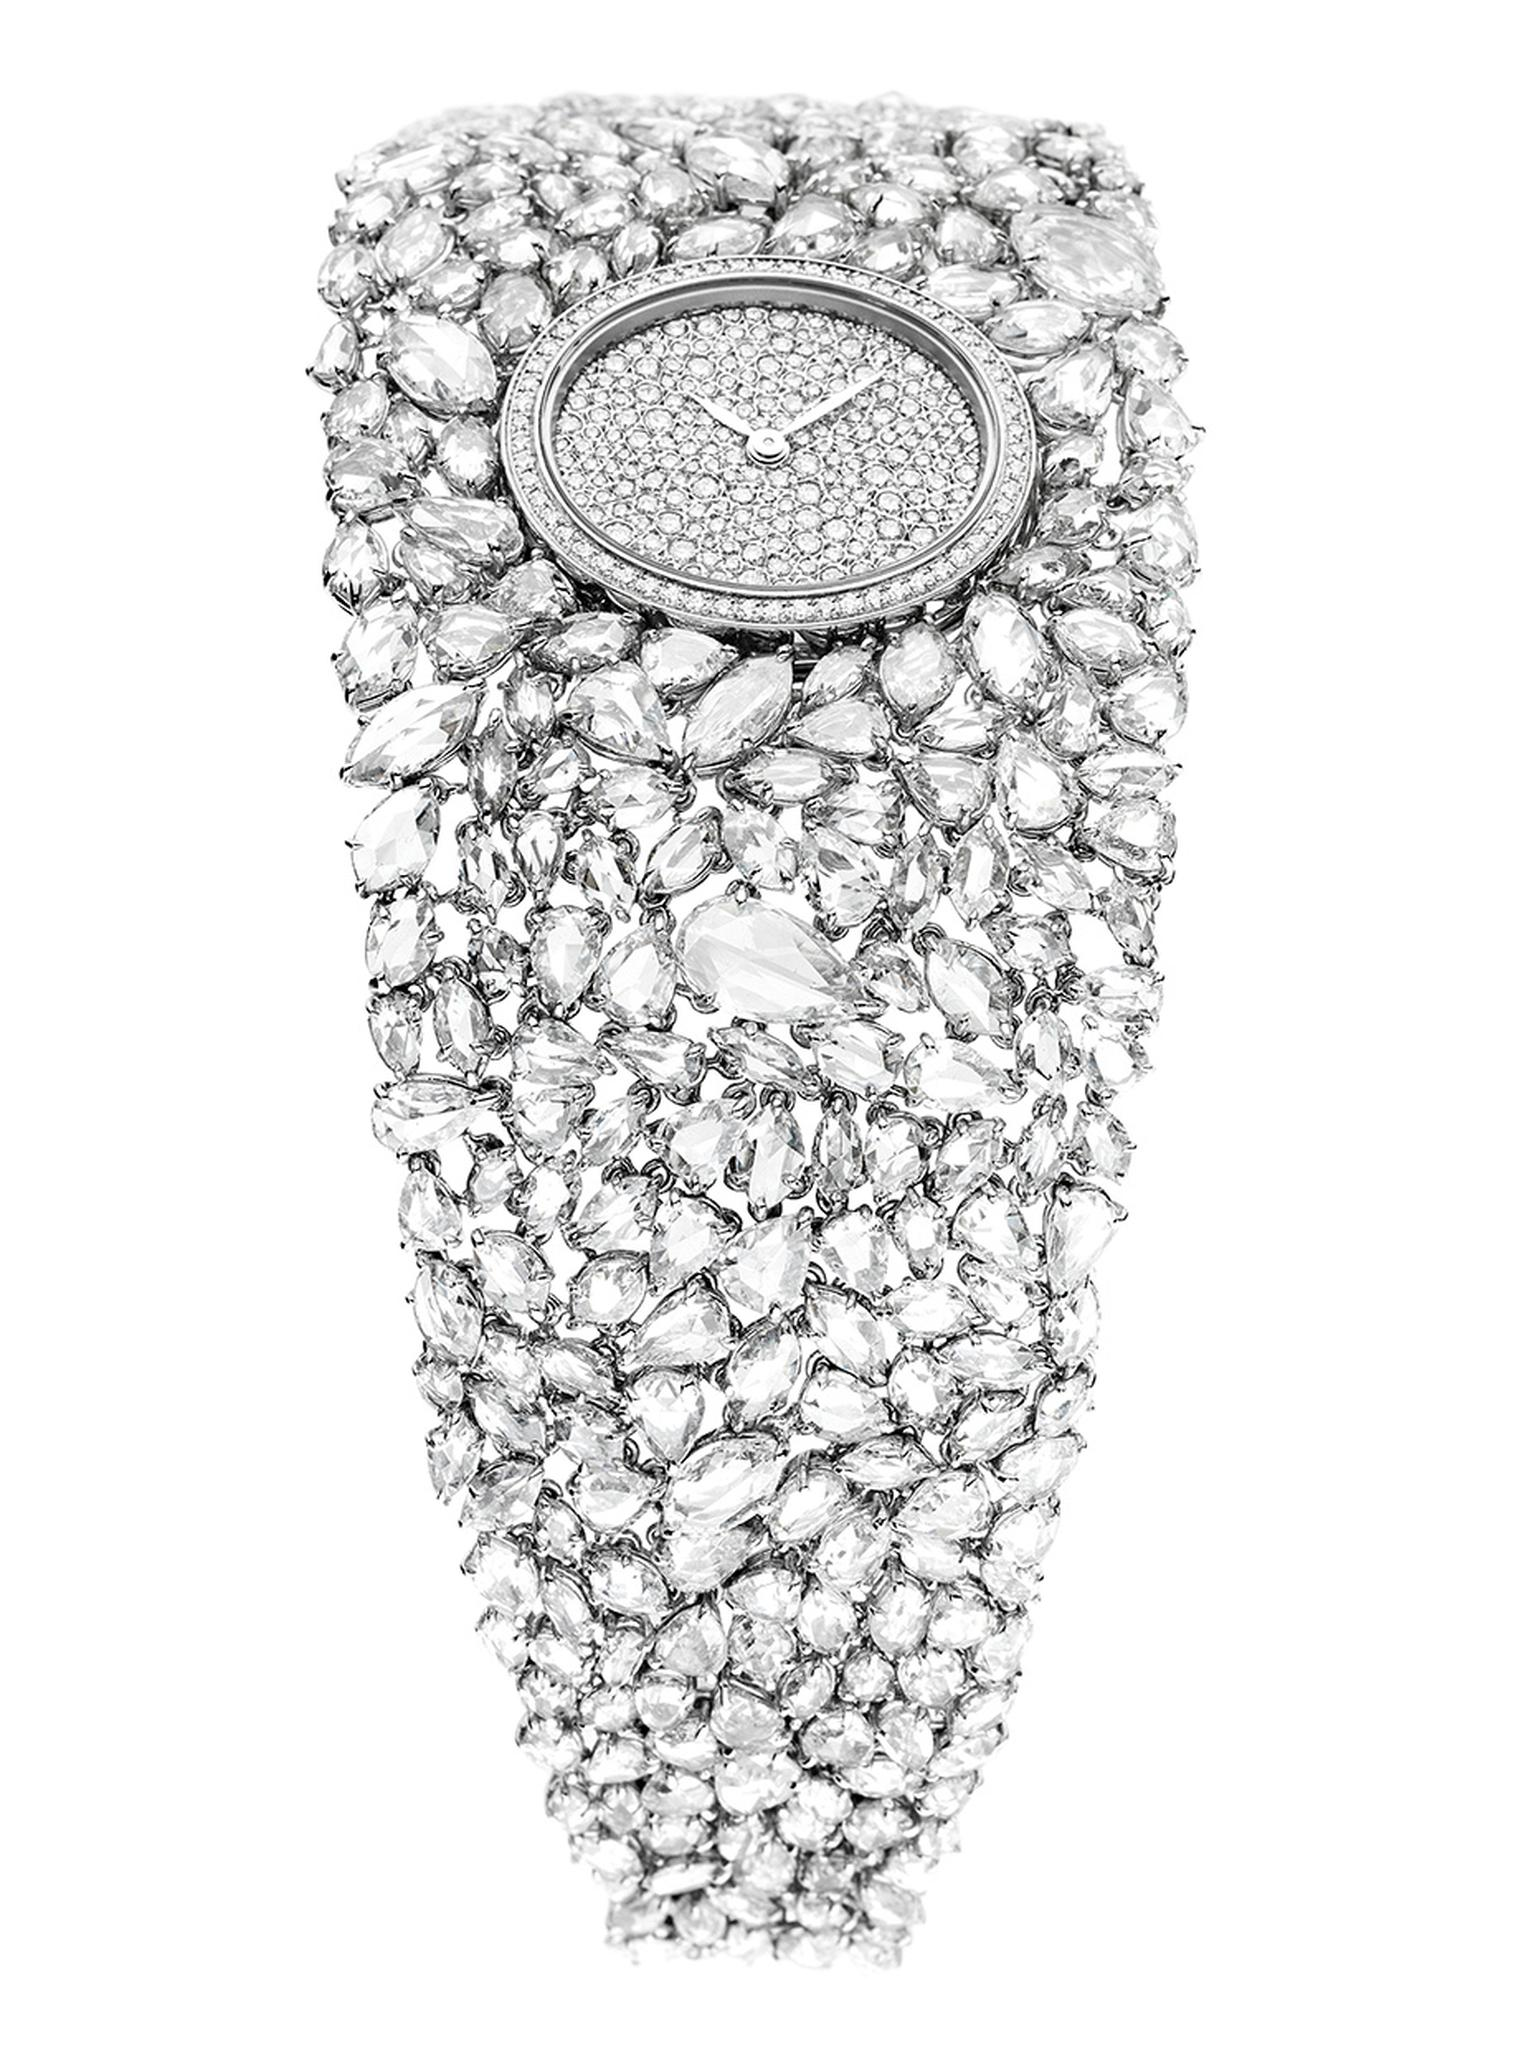 The white gold mesh into which the 352 rose-cut diamonds are set in DeLaneau's Grace Diamonds watch